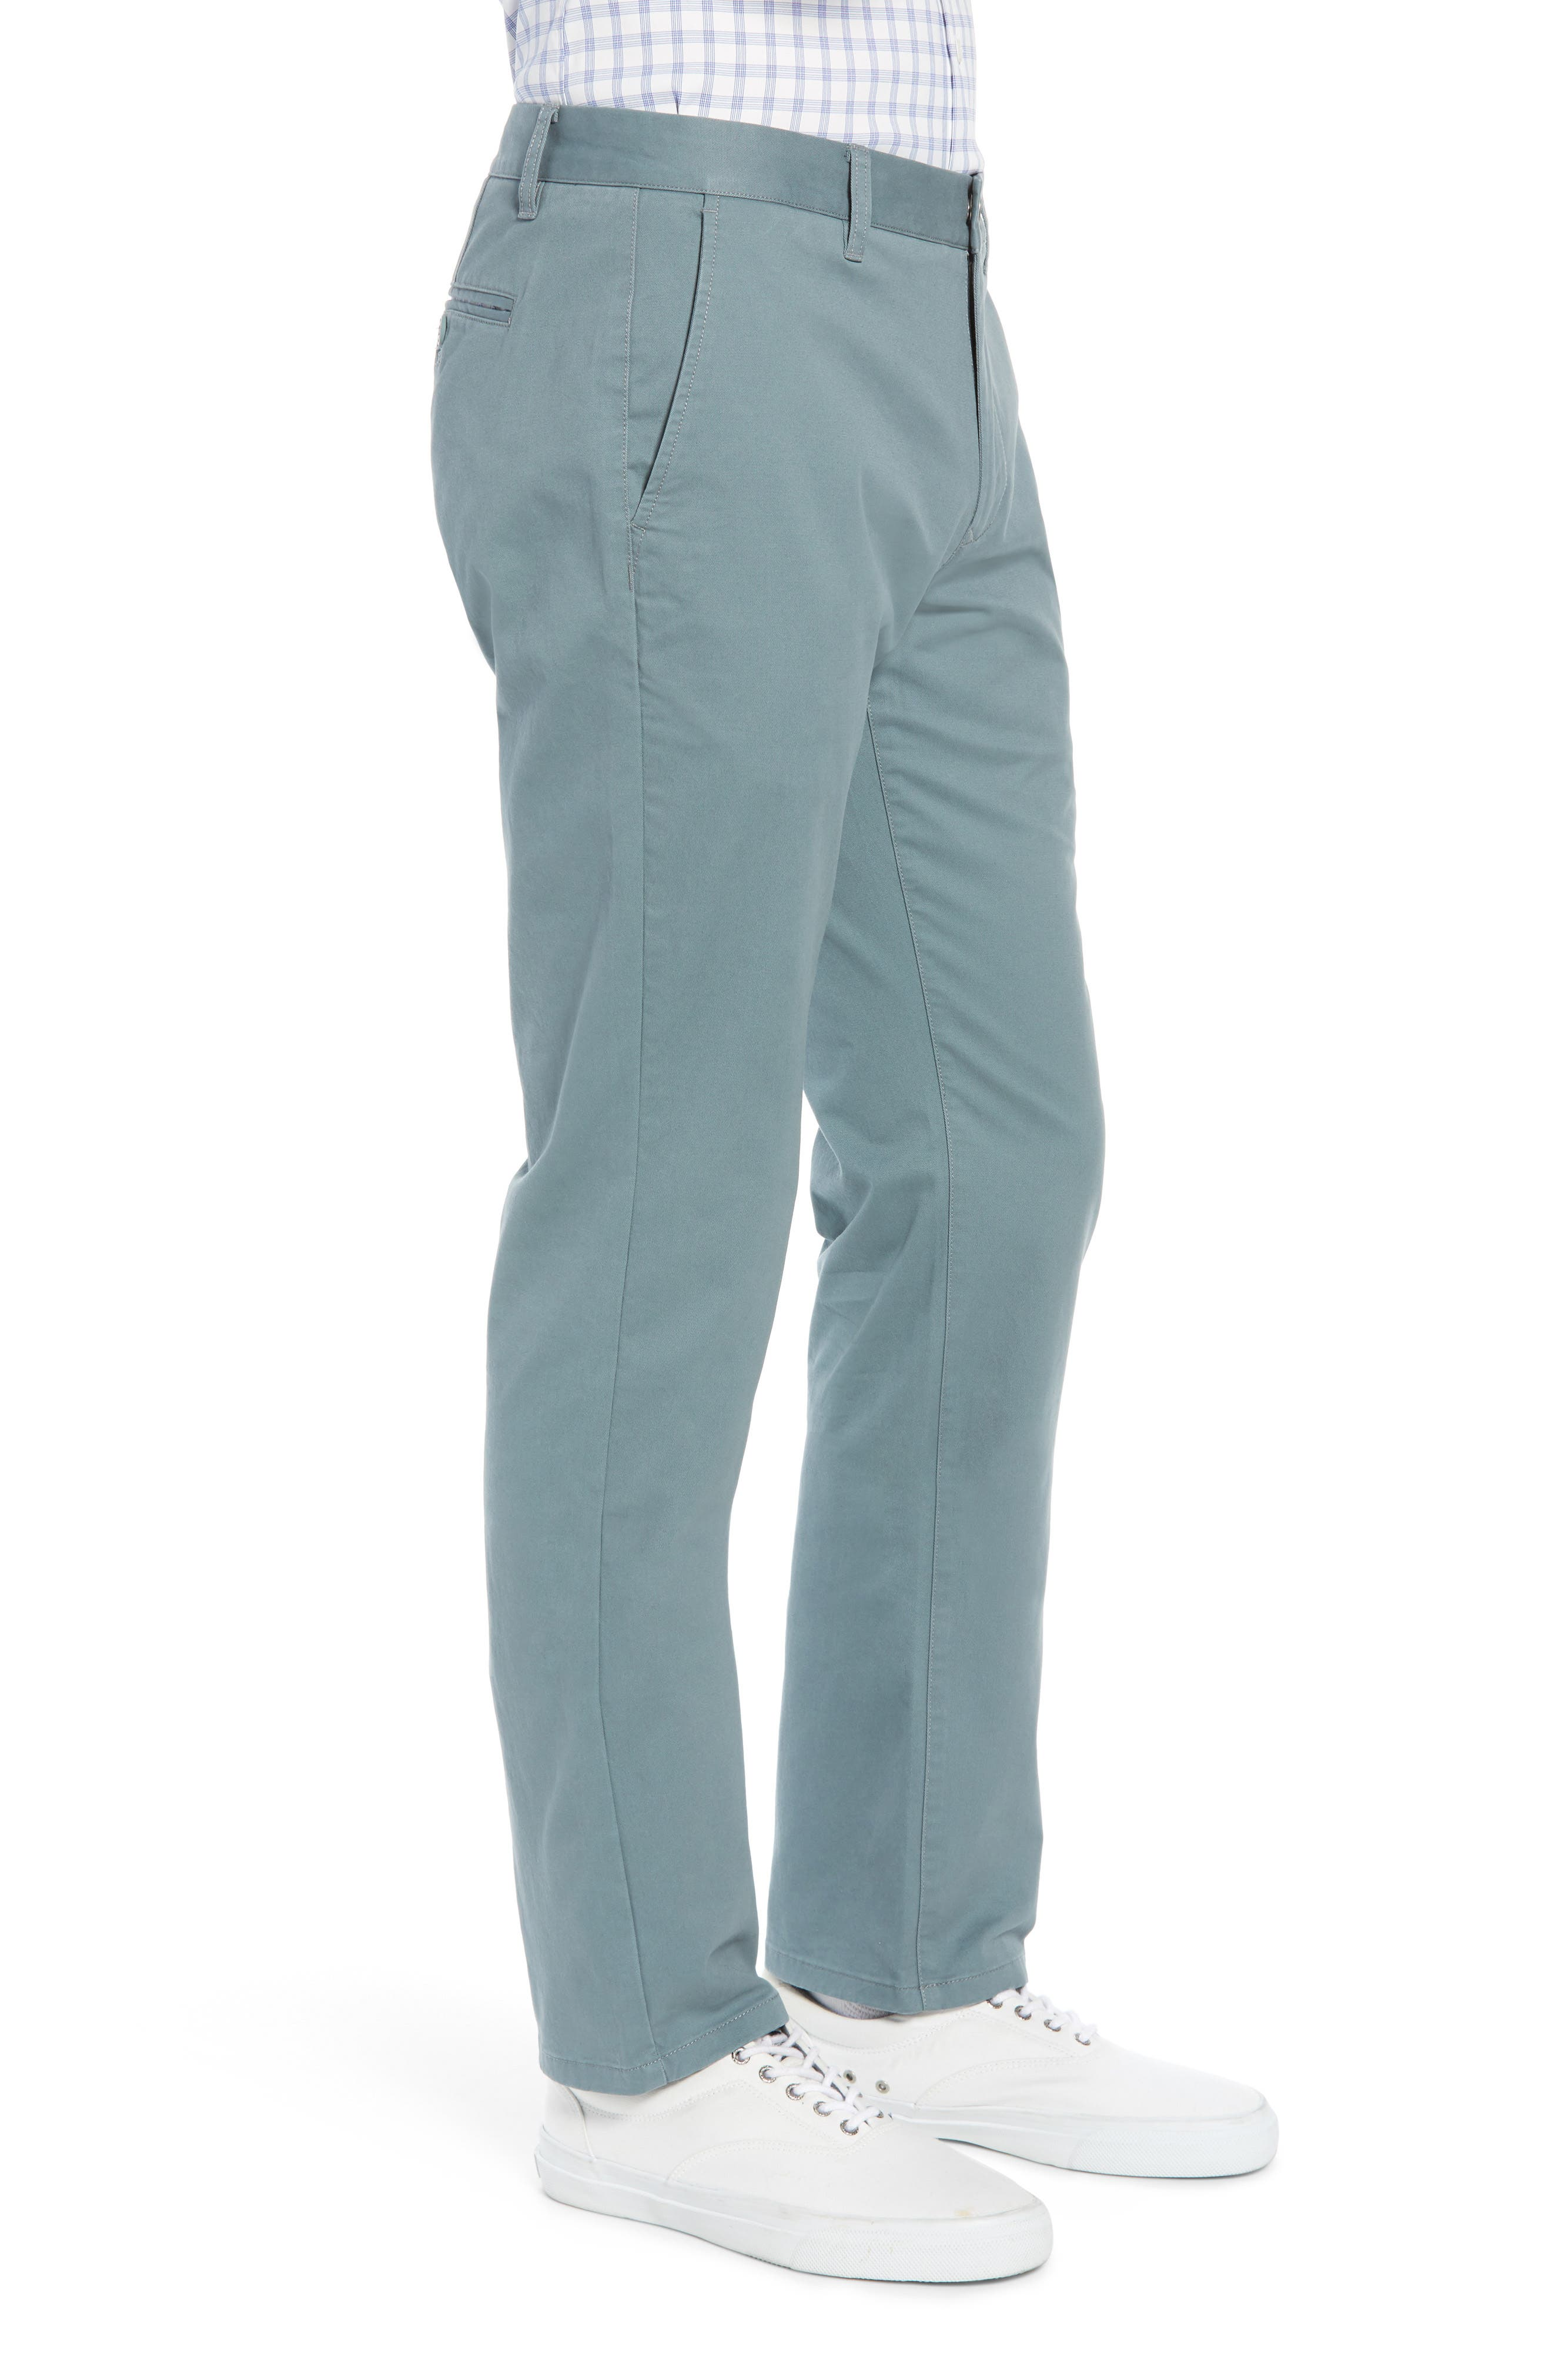 BONOBOS, Slim Fit Stretch Washed Chinos, Alternate thumbnail 4, color, NOPALES